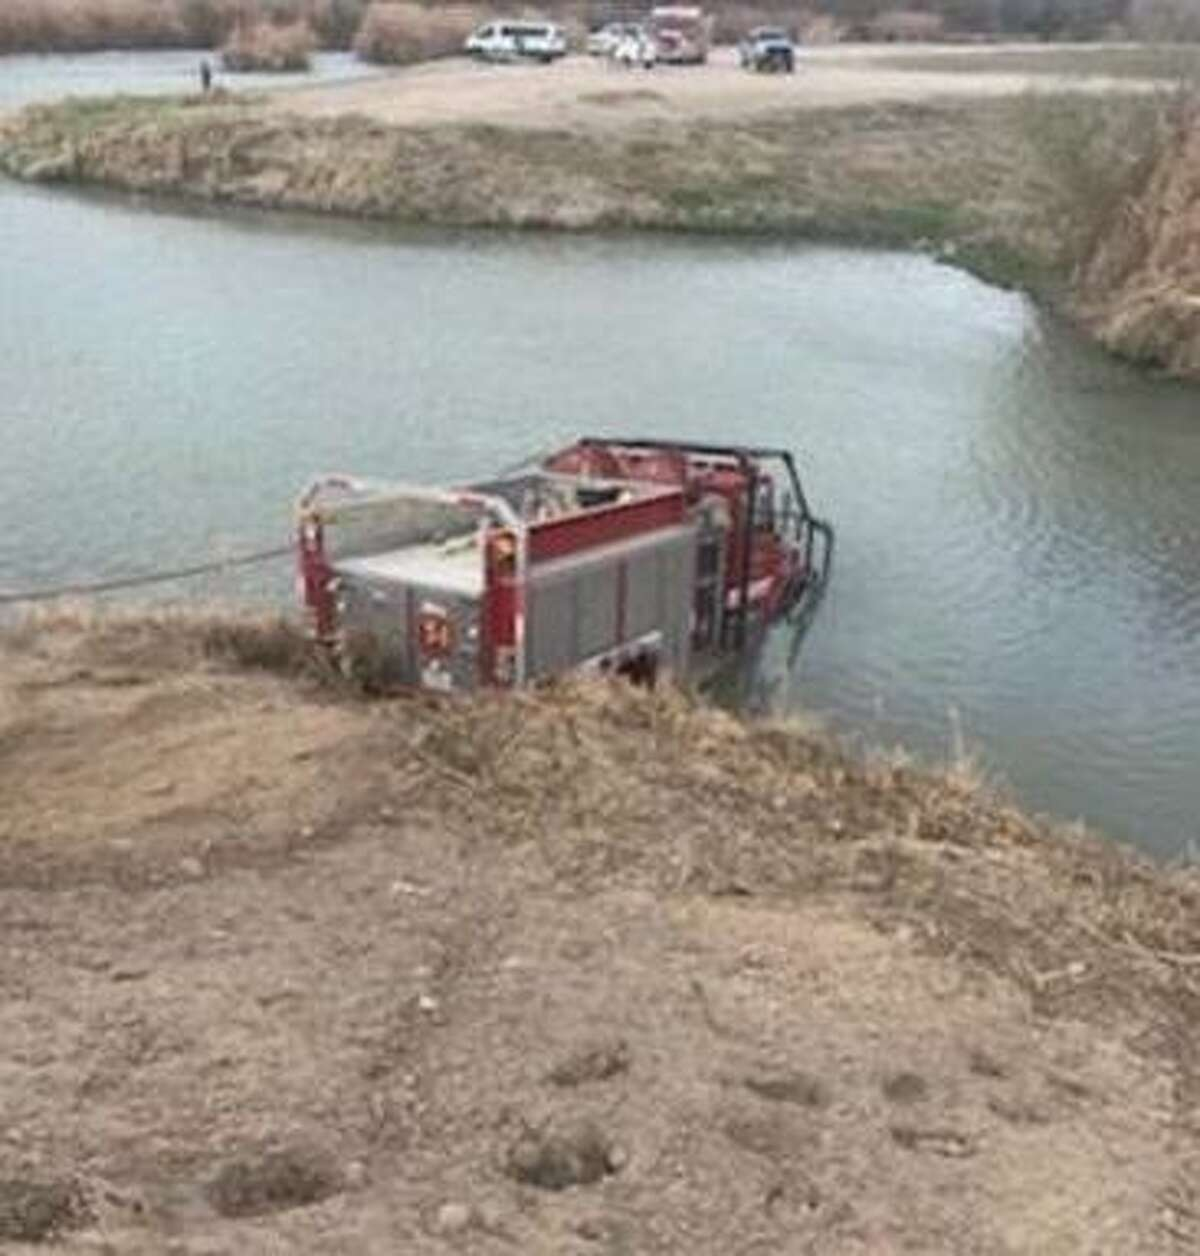 A Laredo Fire Department tanker truck rolled into the Rio Grande in the El Azteca neighborhood due to a malfunction while firefighters were battling a grass fire. No injuries were reported.